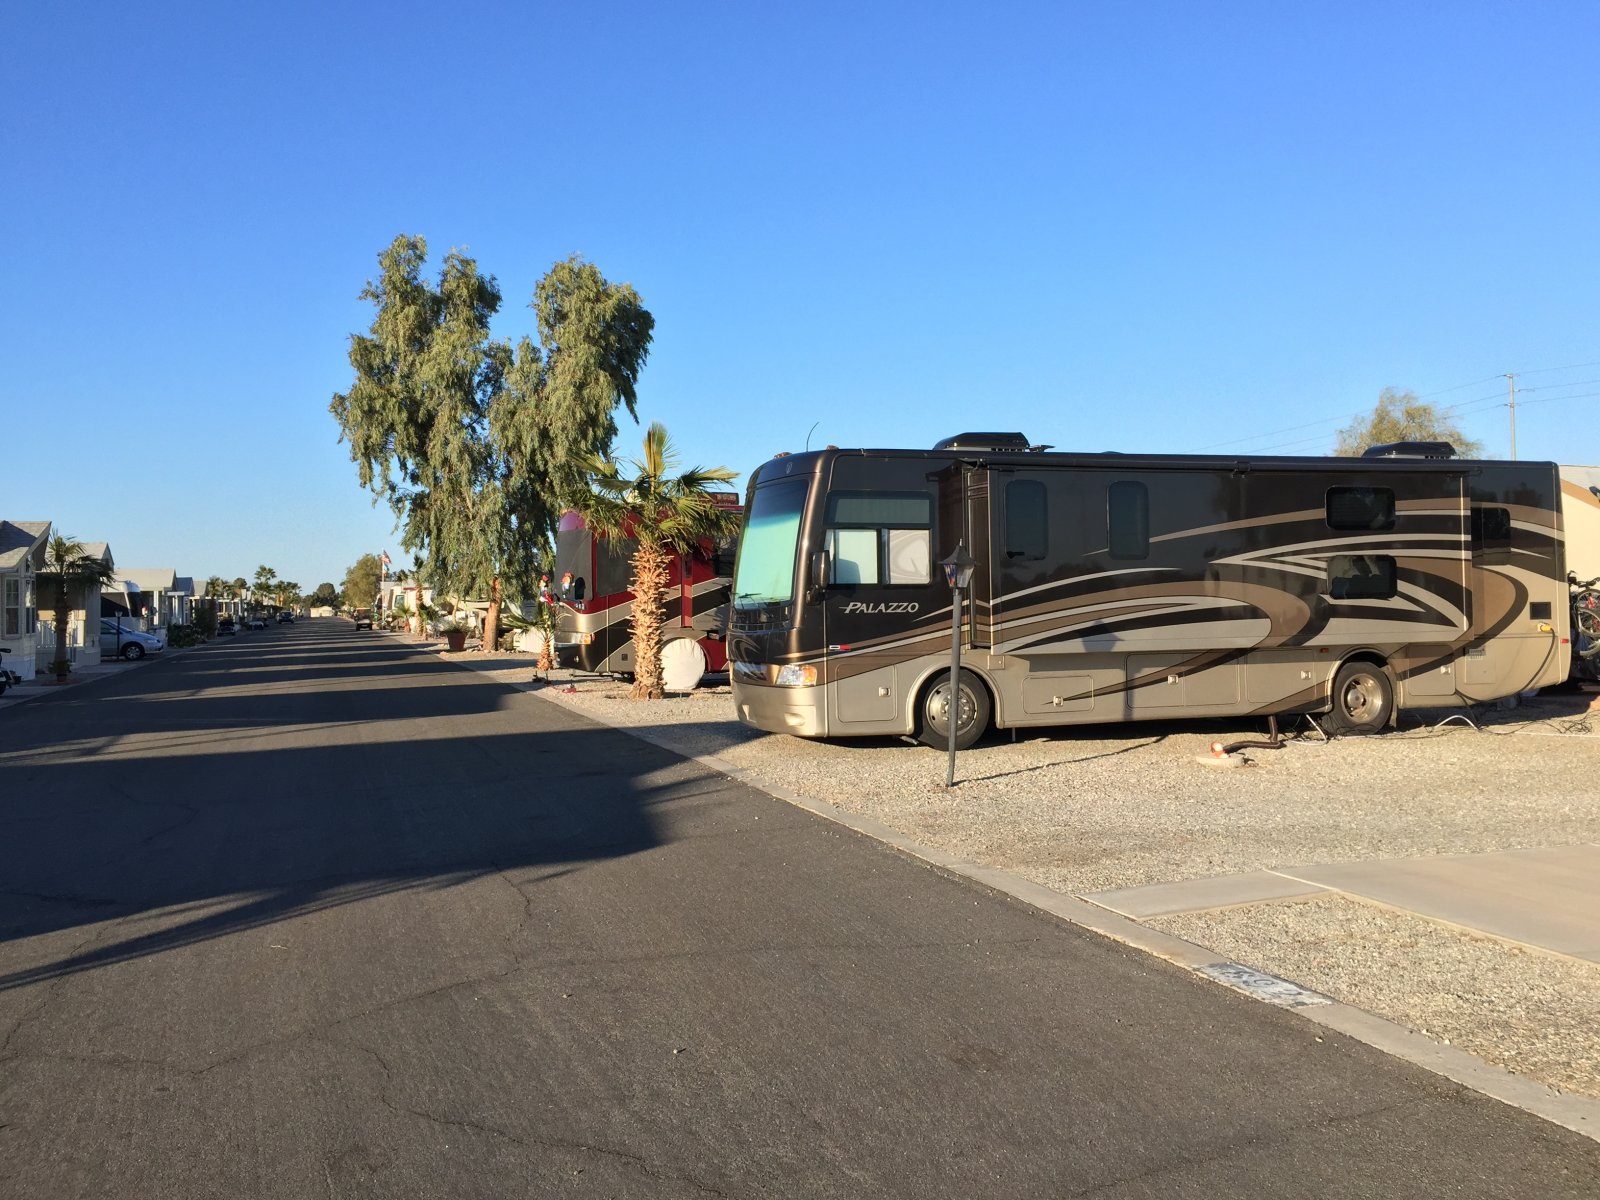 Click image for larger version  Name:Westwind RV park.jpg Views:74 Size:350.0 KB ID:86415